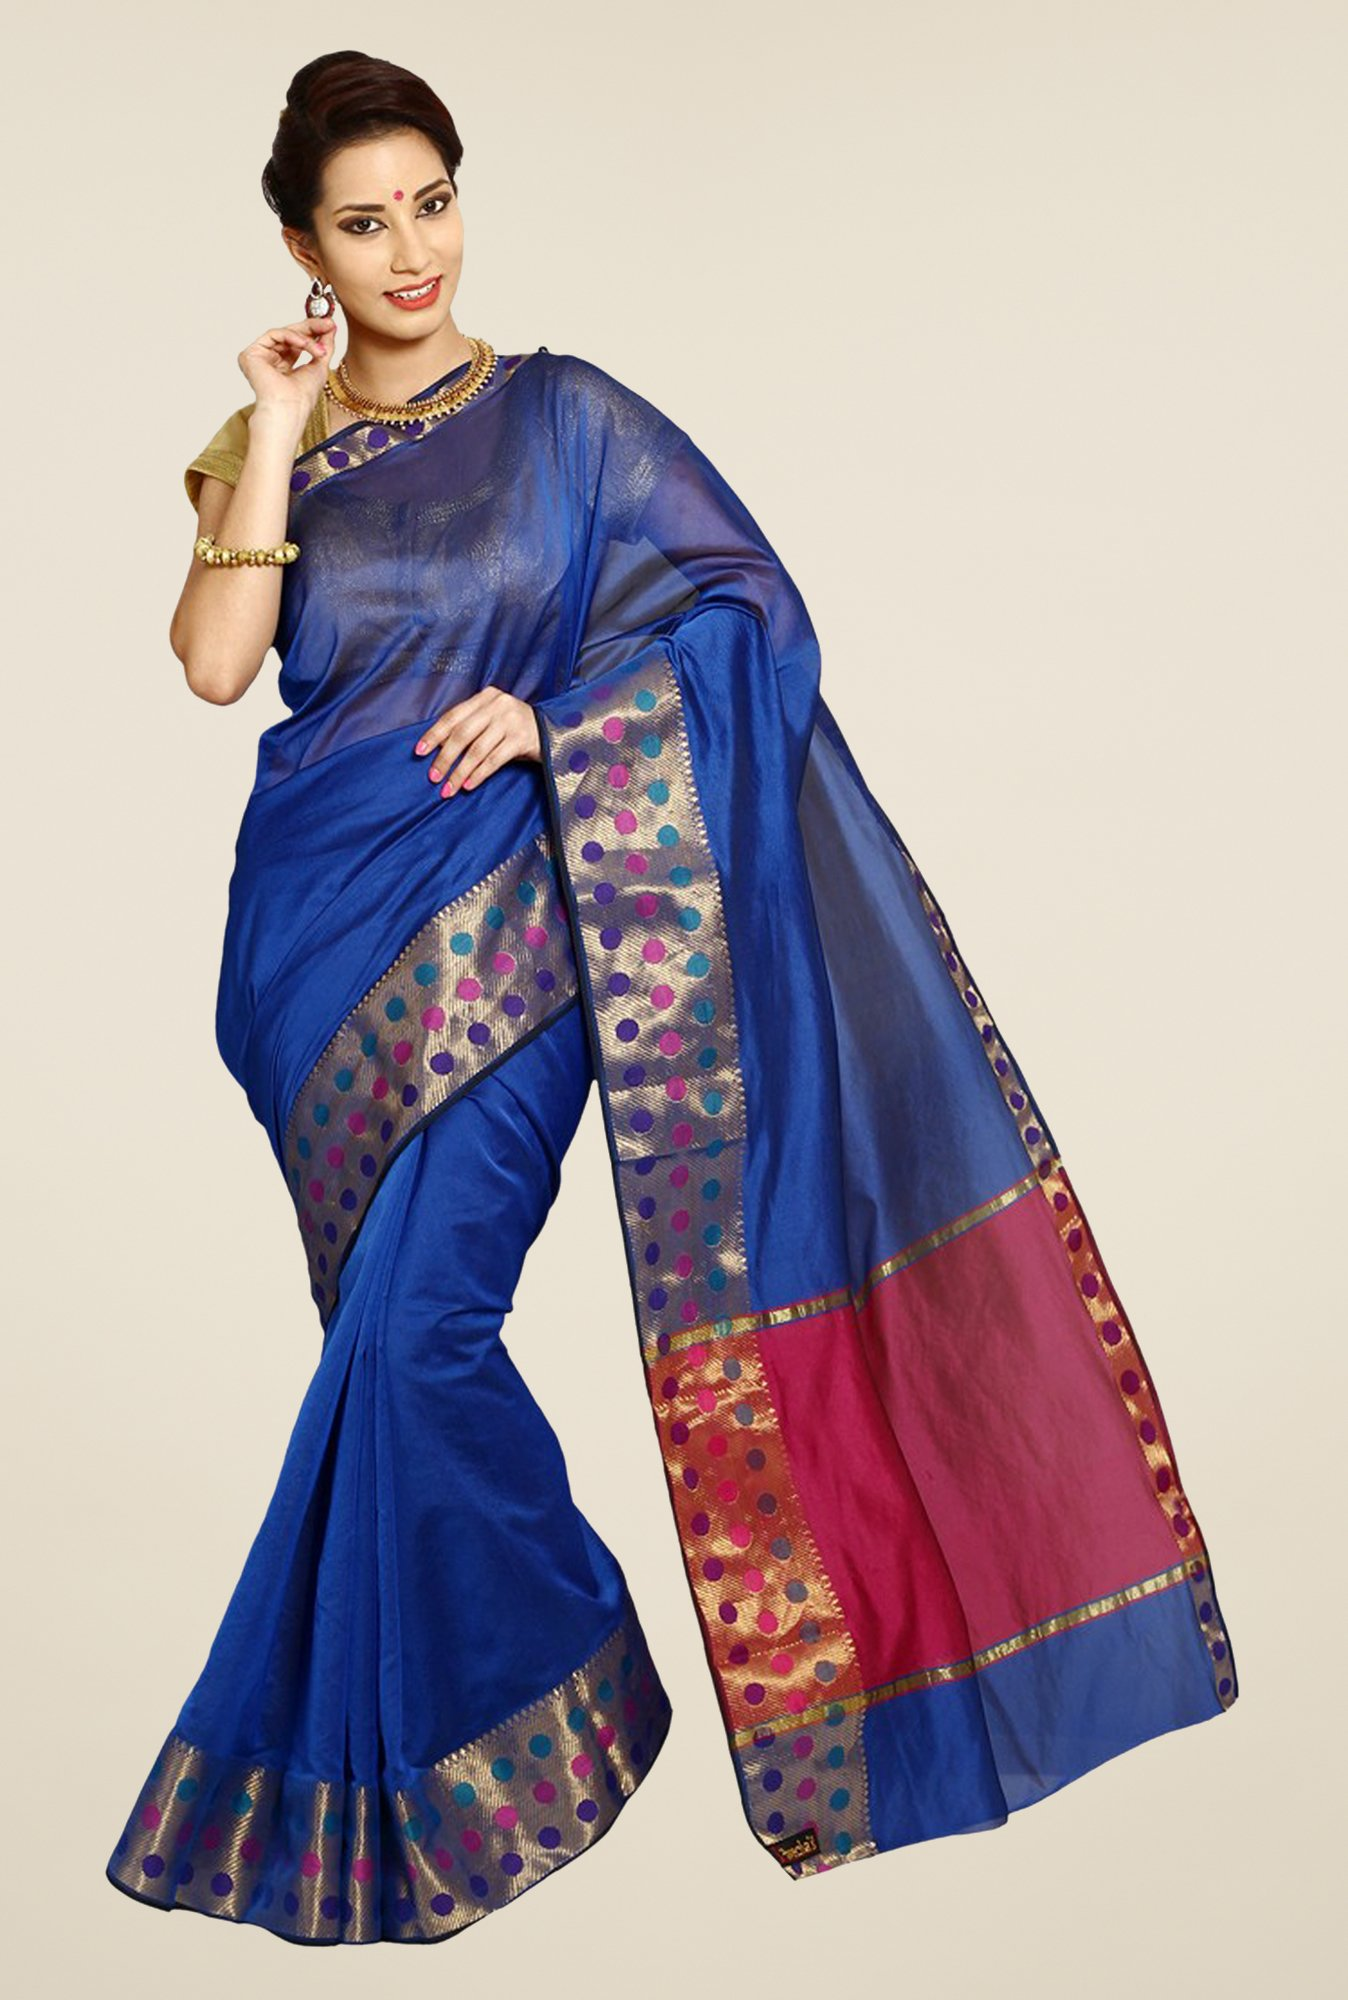 Pavecha's Navy Banarasi Cotton Silk Saree